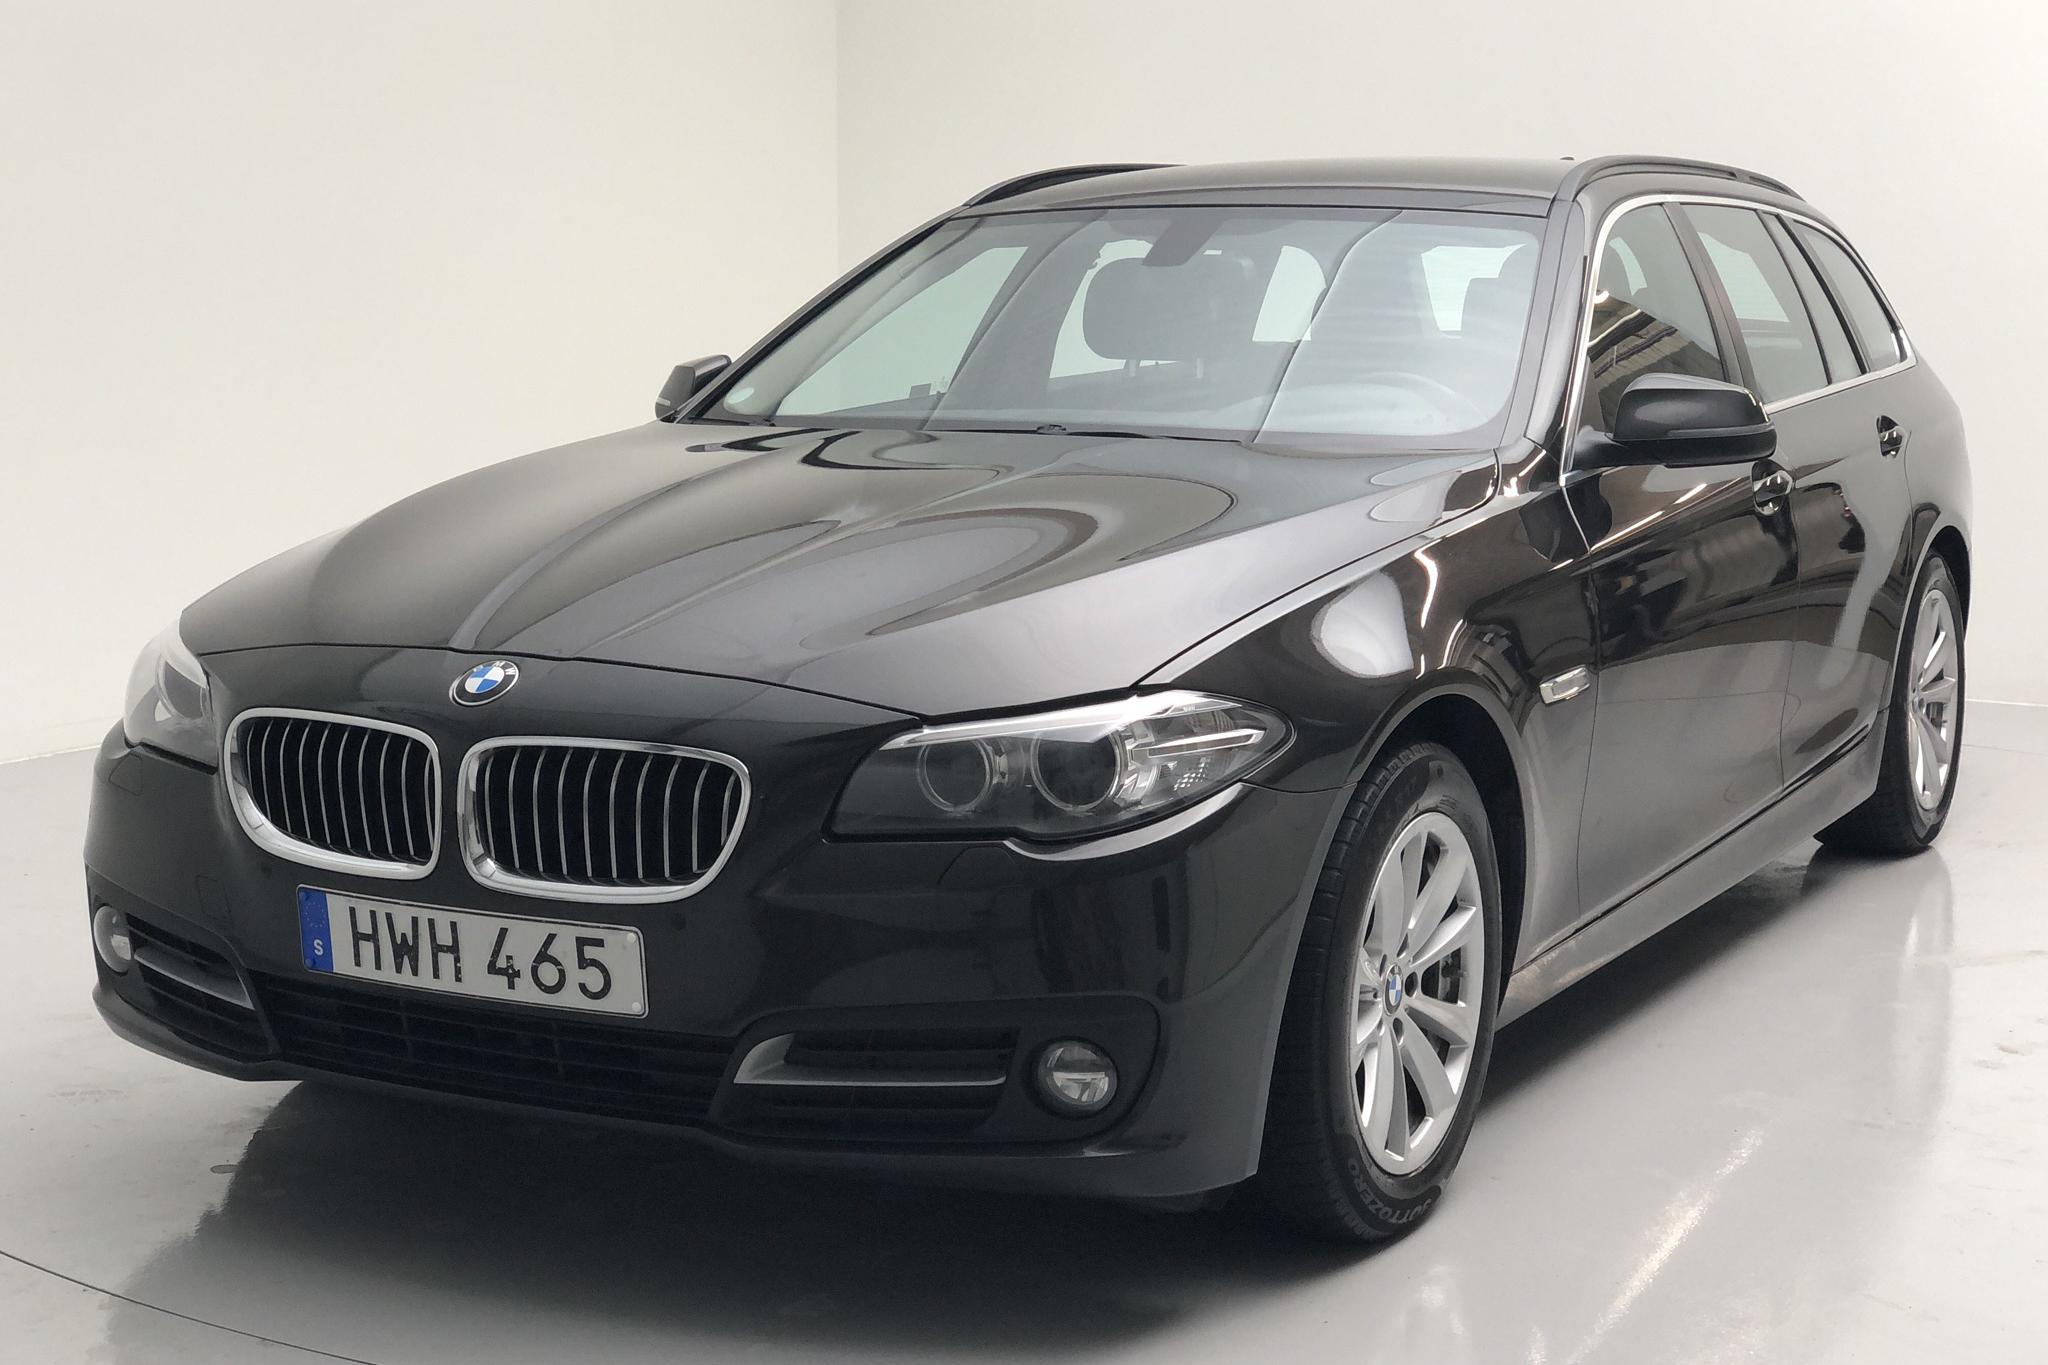 BMW 520d Touring, F11 (190hk) - 169 870 km - Automatic - brown - 2016